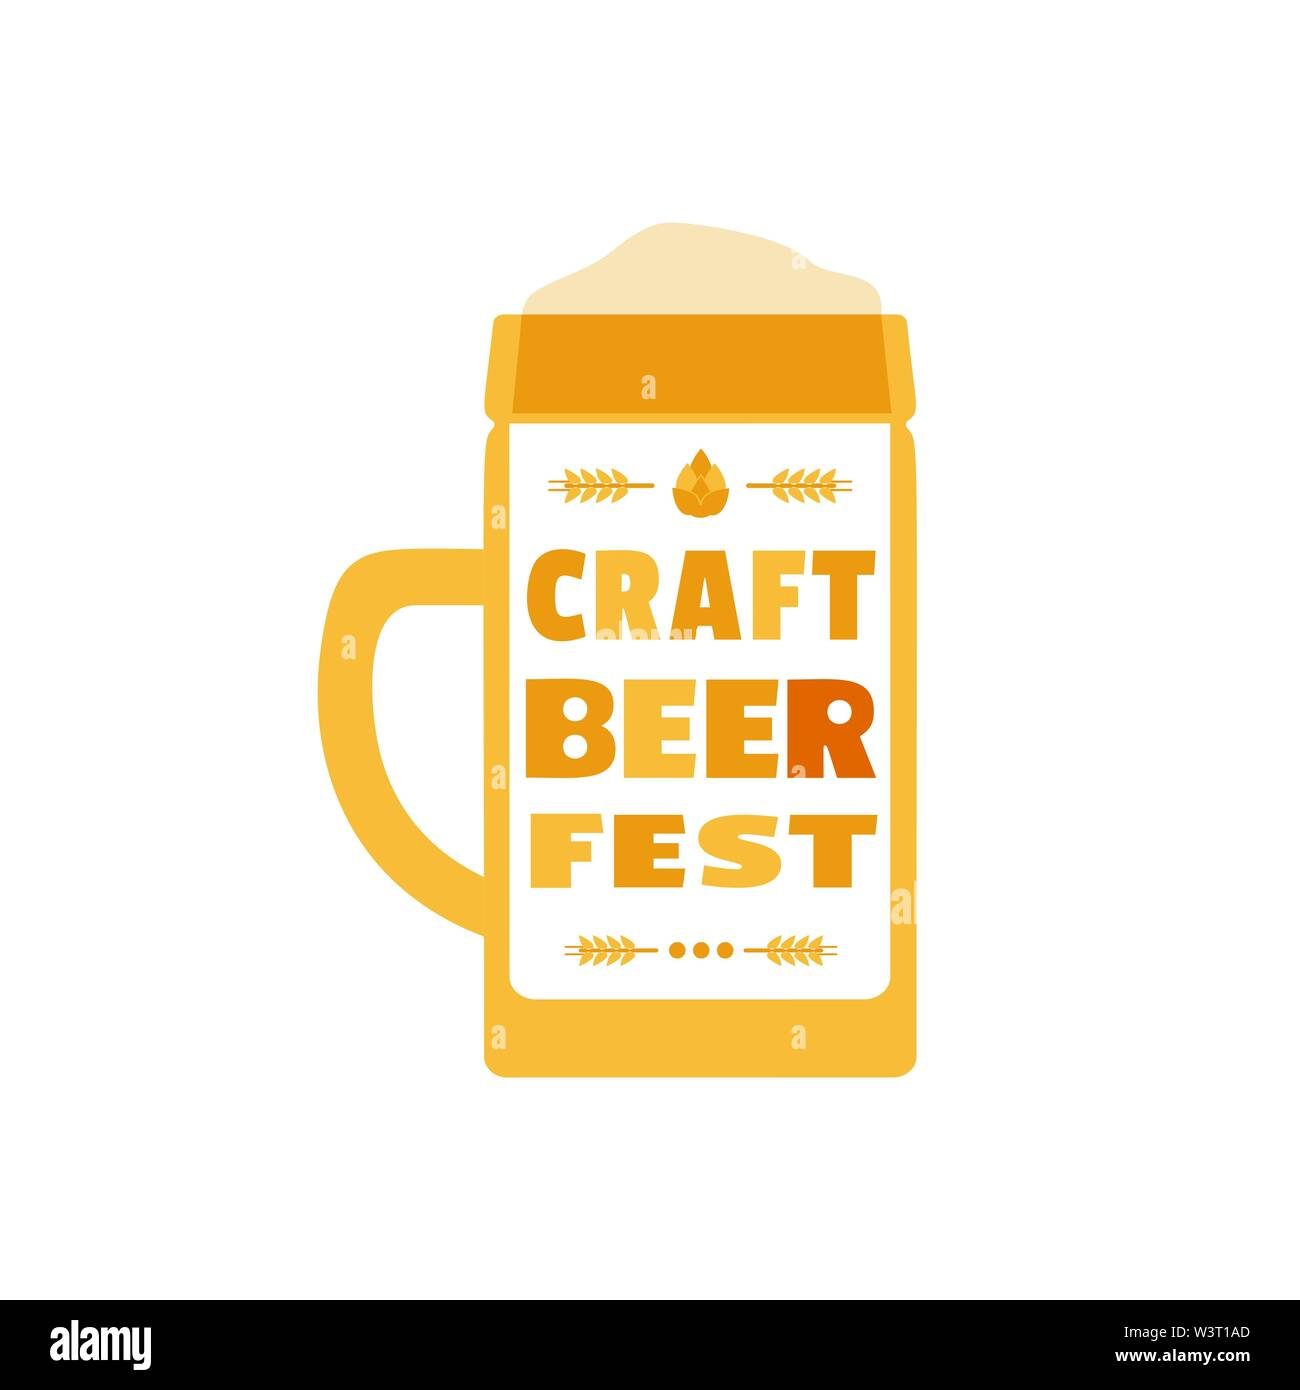 Craft Beer Festival hand drawn flat color vector icon - Stock Image